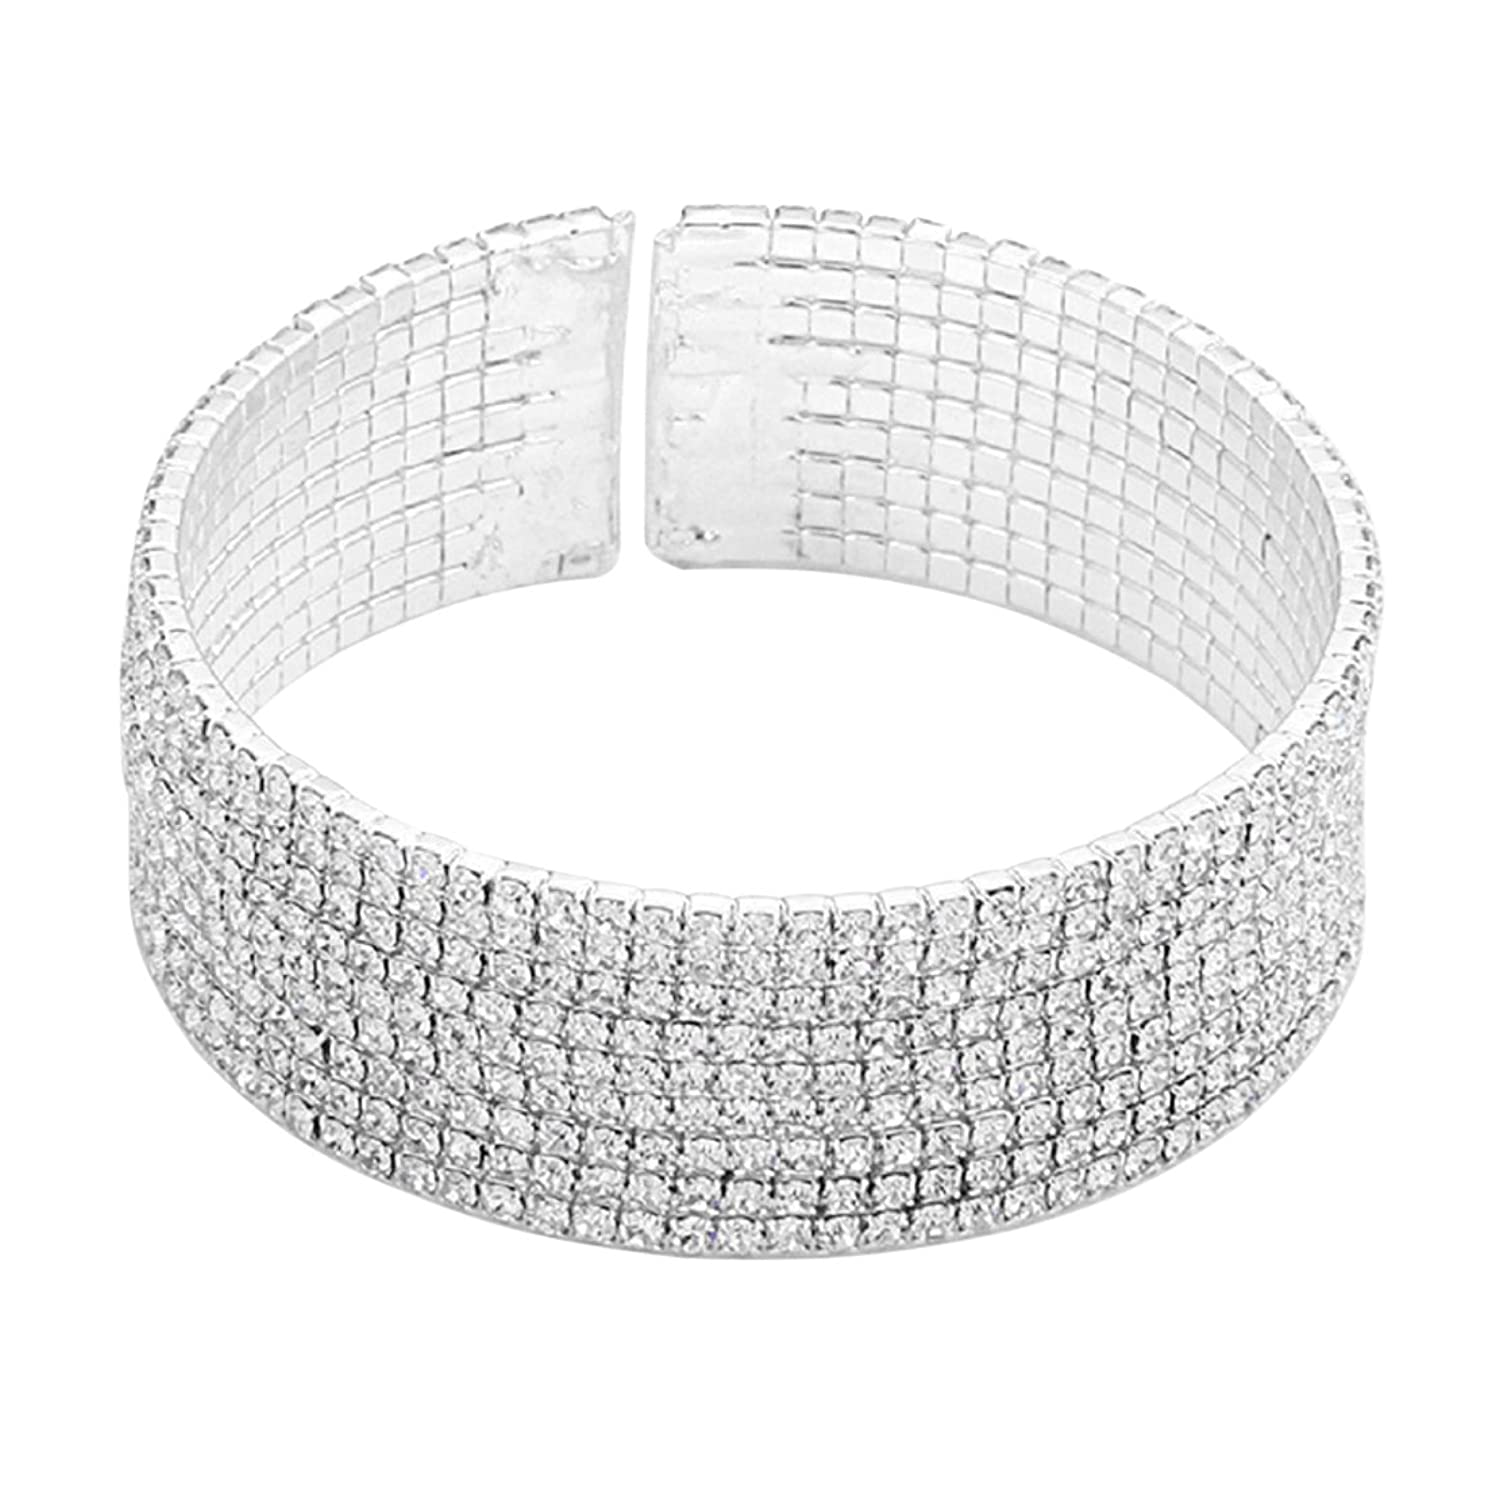 Rosemarie Collections Women's Bridal Jewelry Crystal Cuff Bracelet